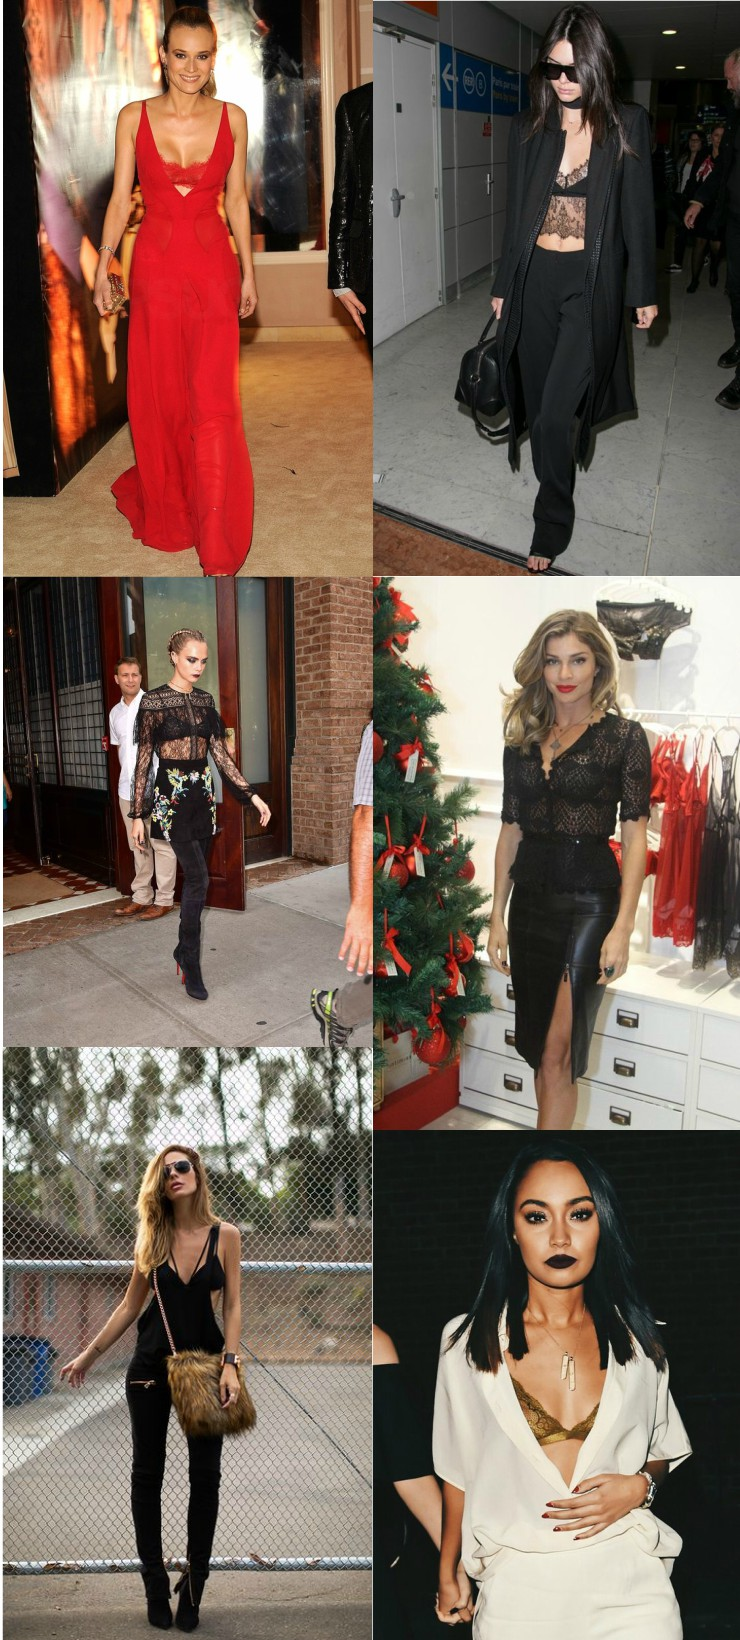 lingerie-a-mostra-famosas